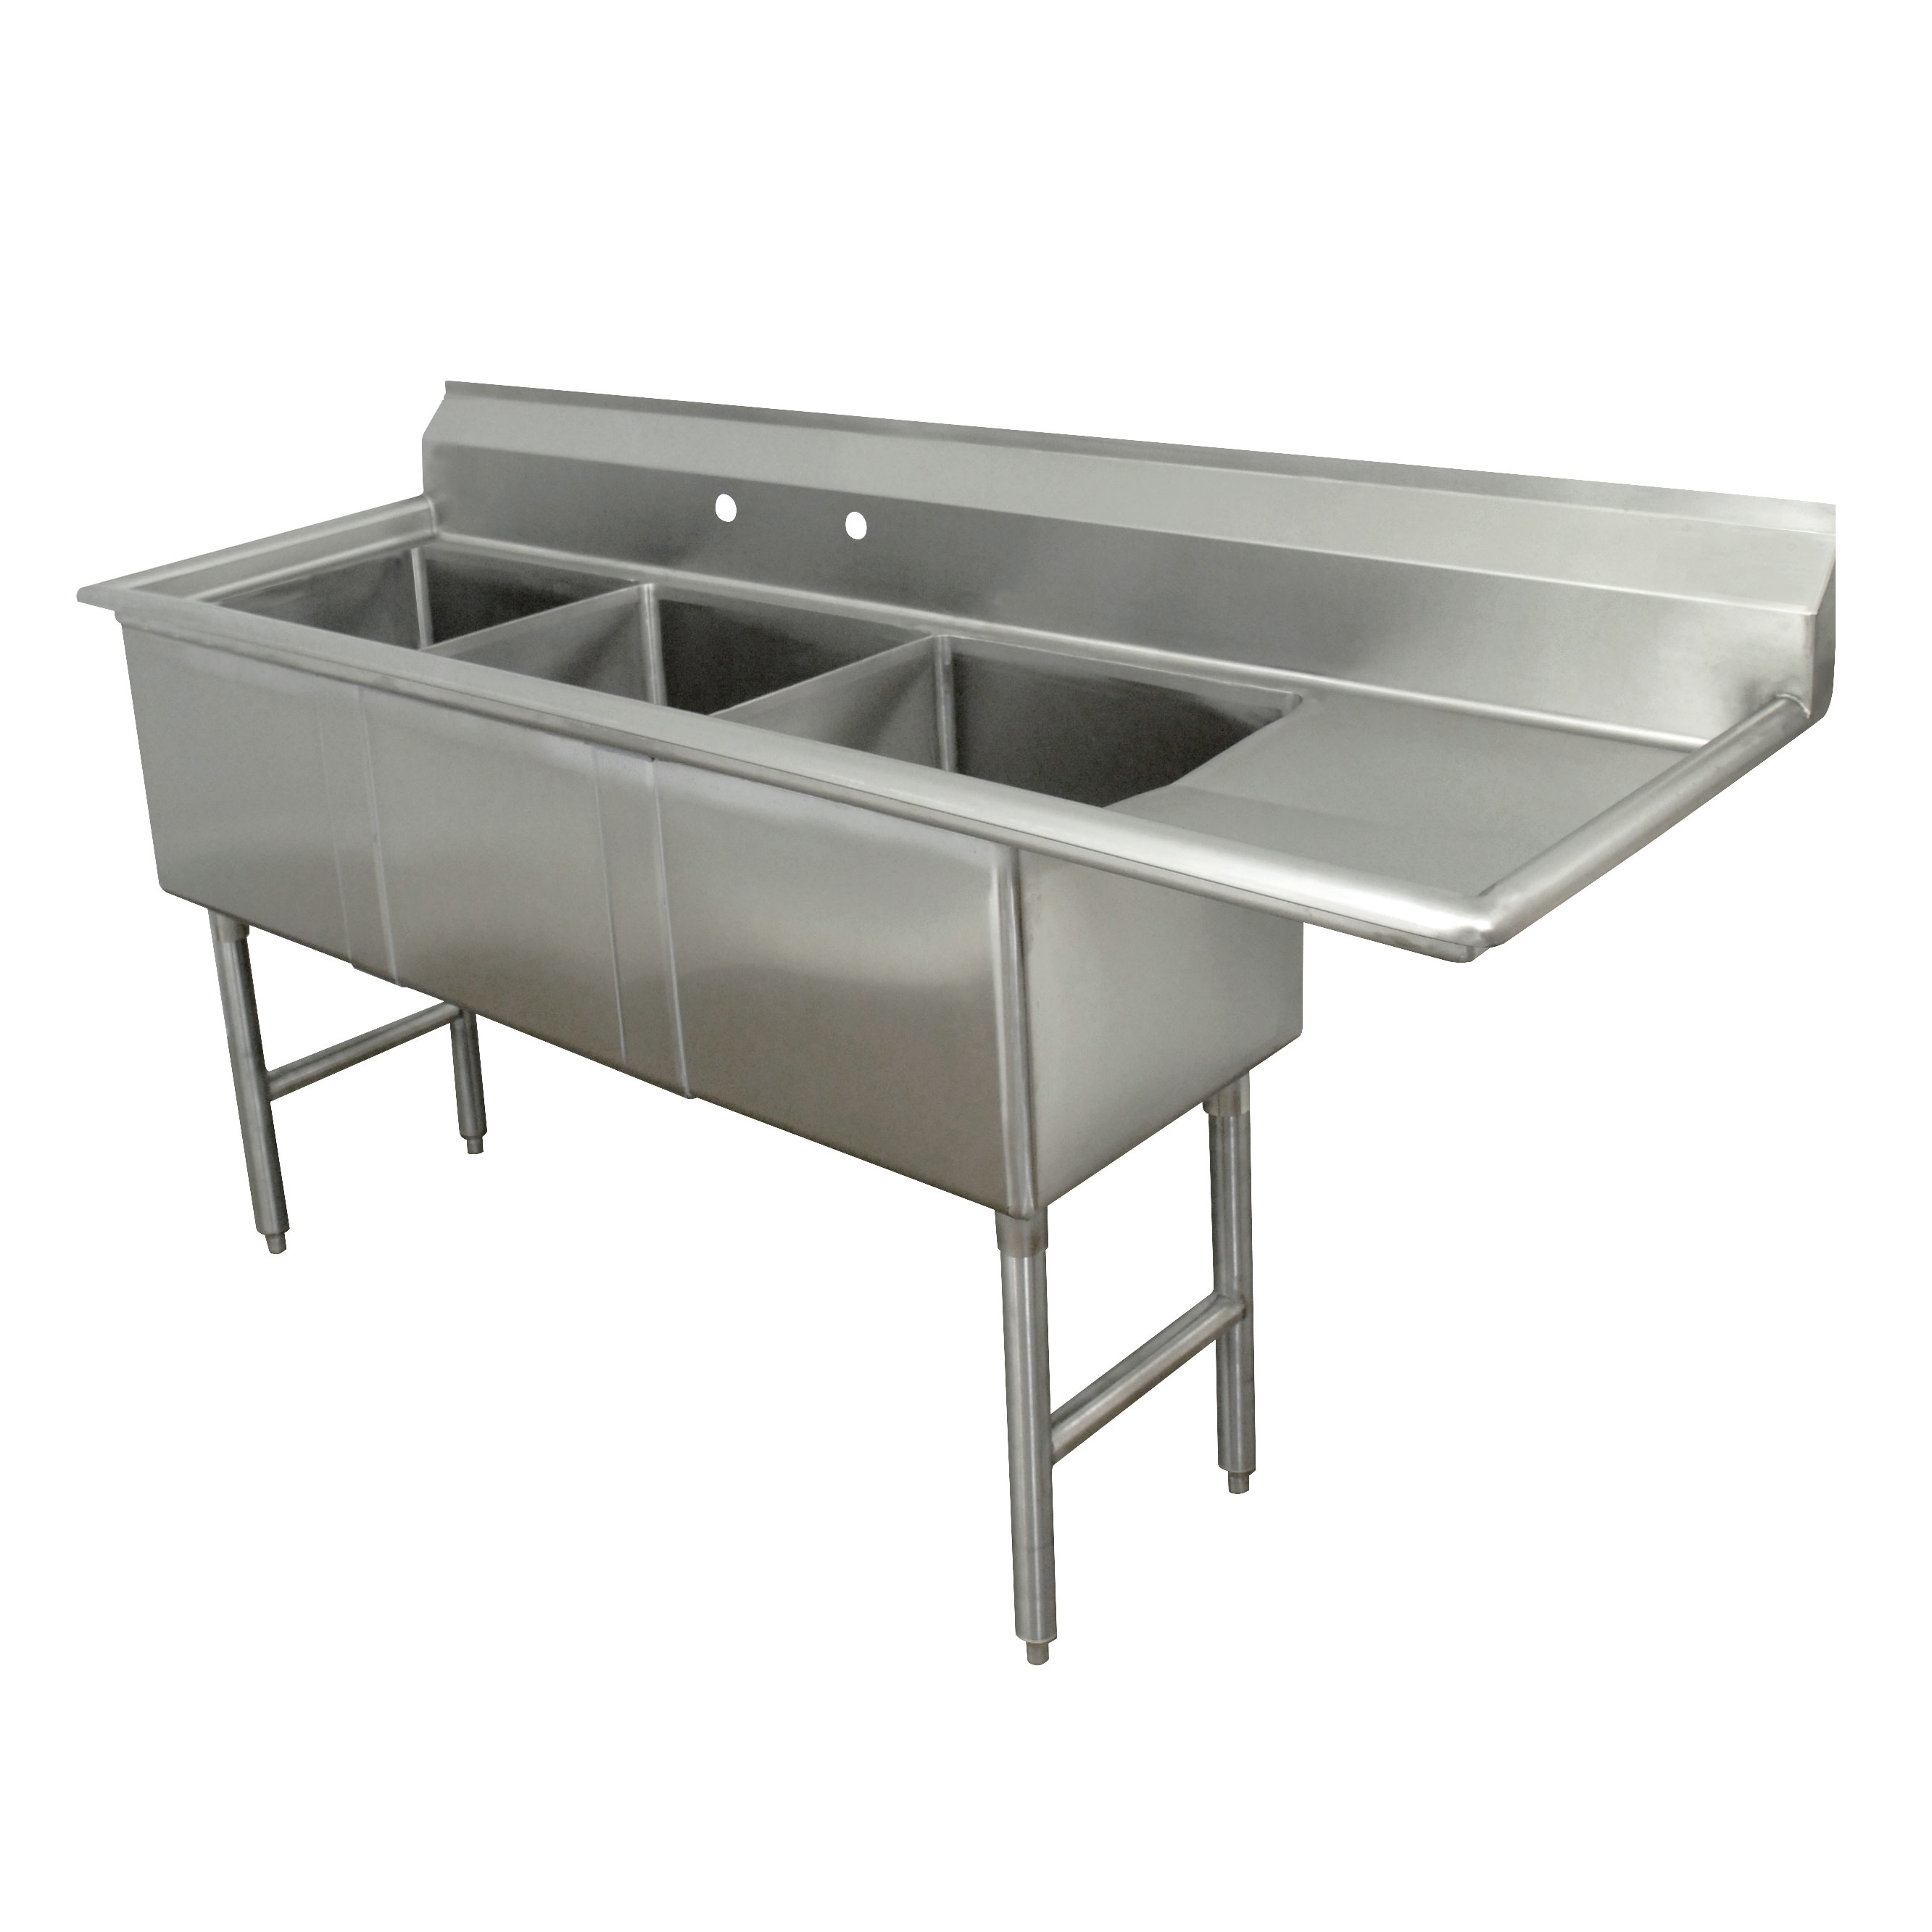 Advance Tabco FC-3-2424-24R sink, (3) three compartment